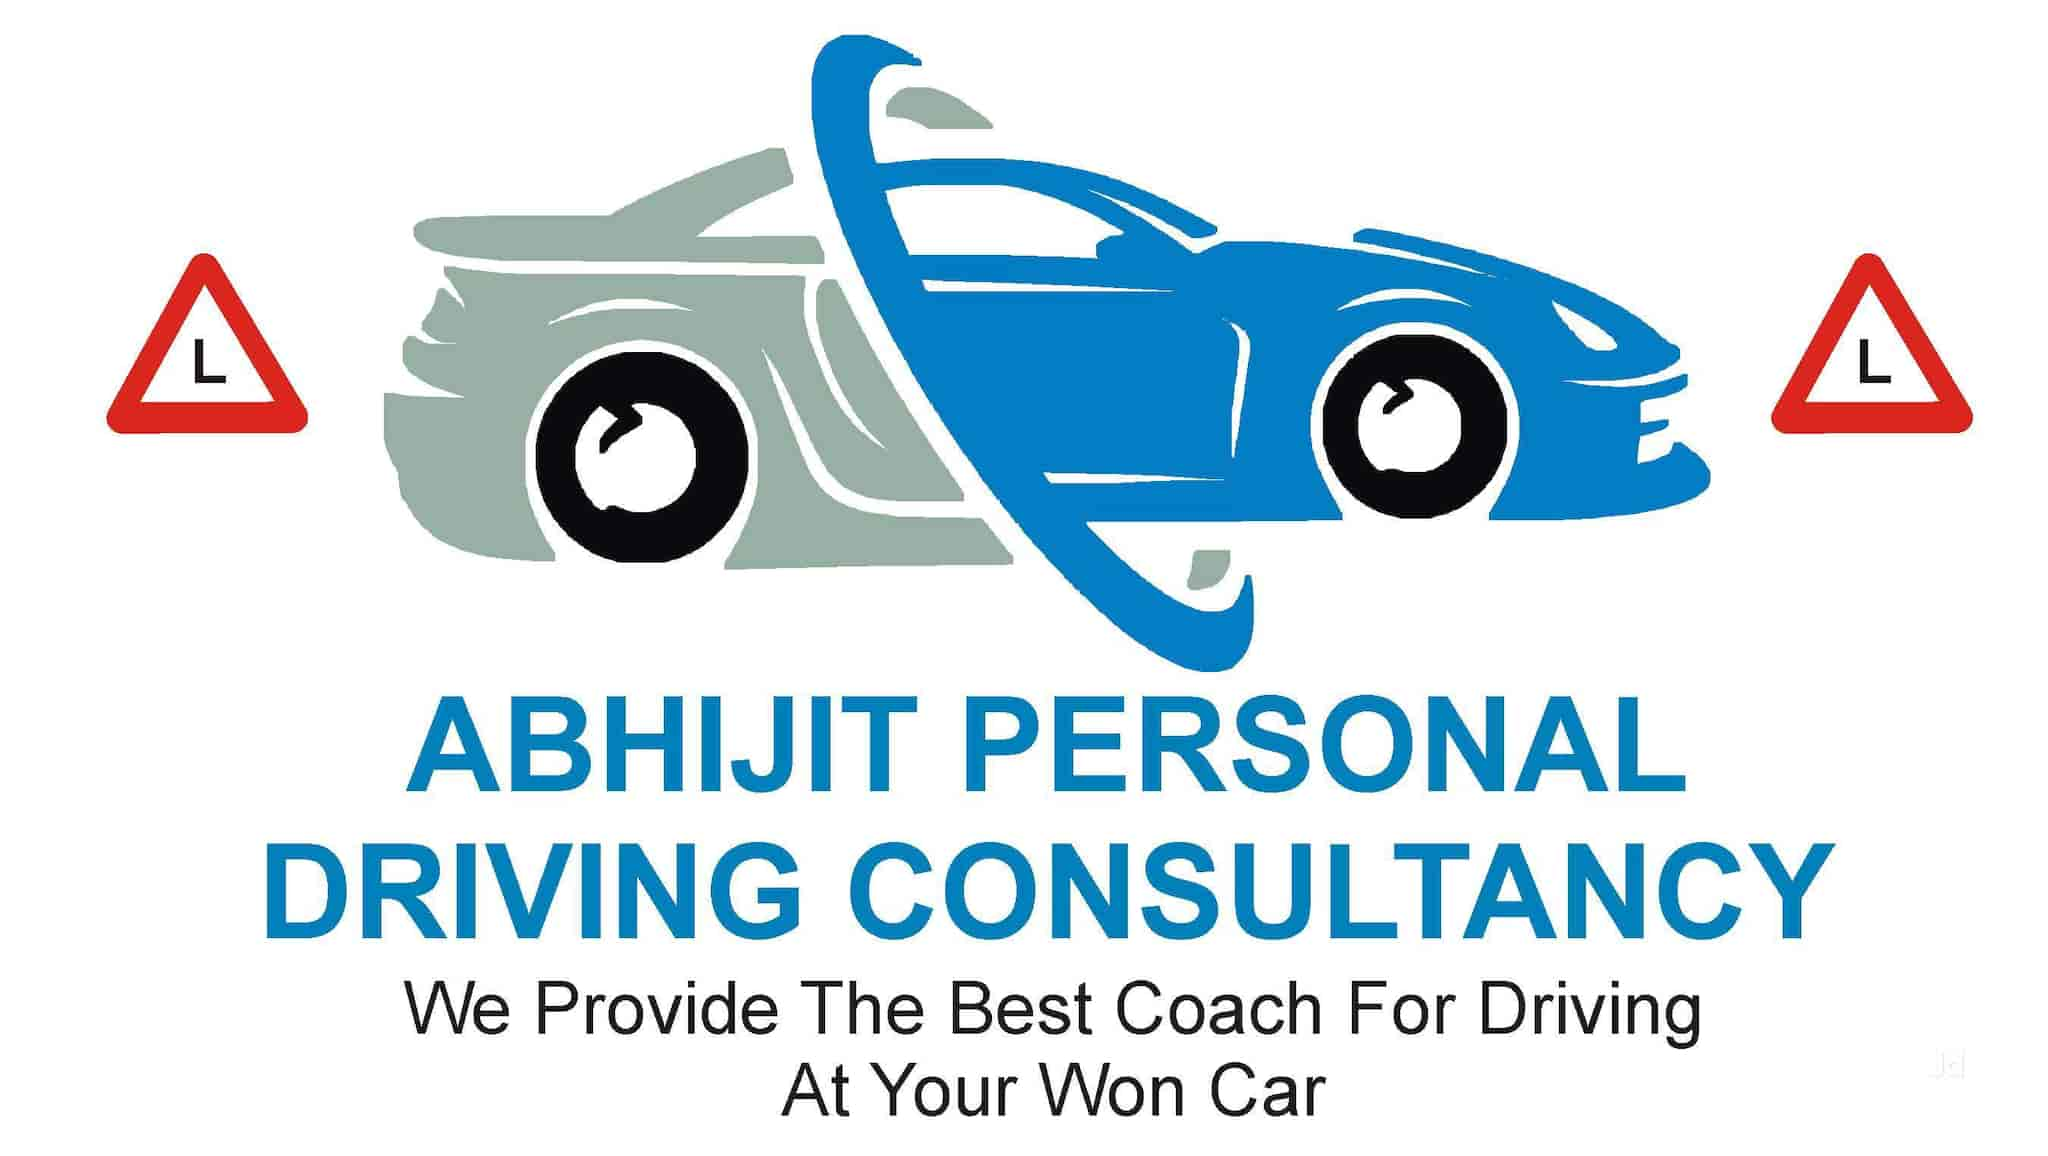 - Abhijit Personel Driving Consultancy Images, Manewada Road, Nagpur - Home Tutors For Motor Training